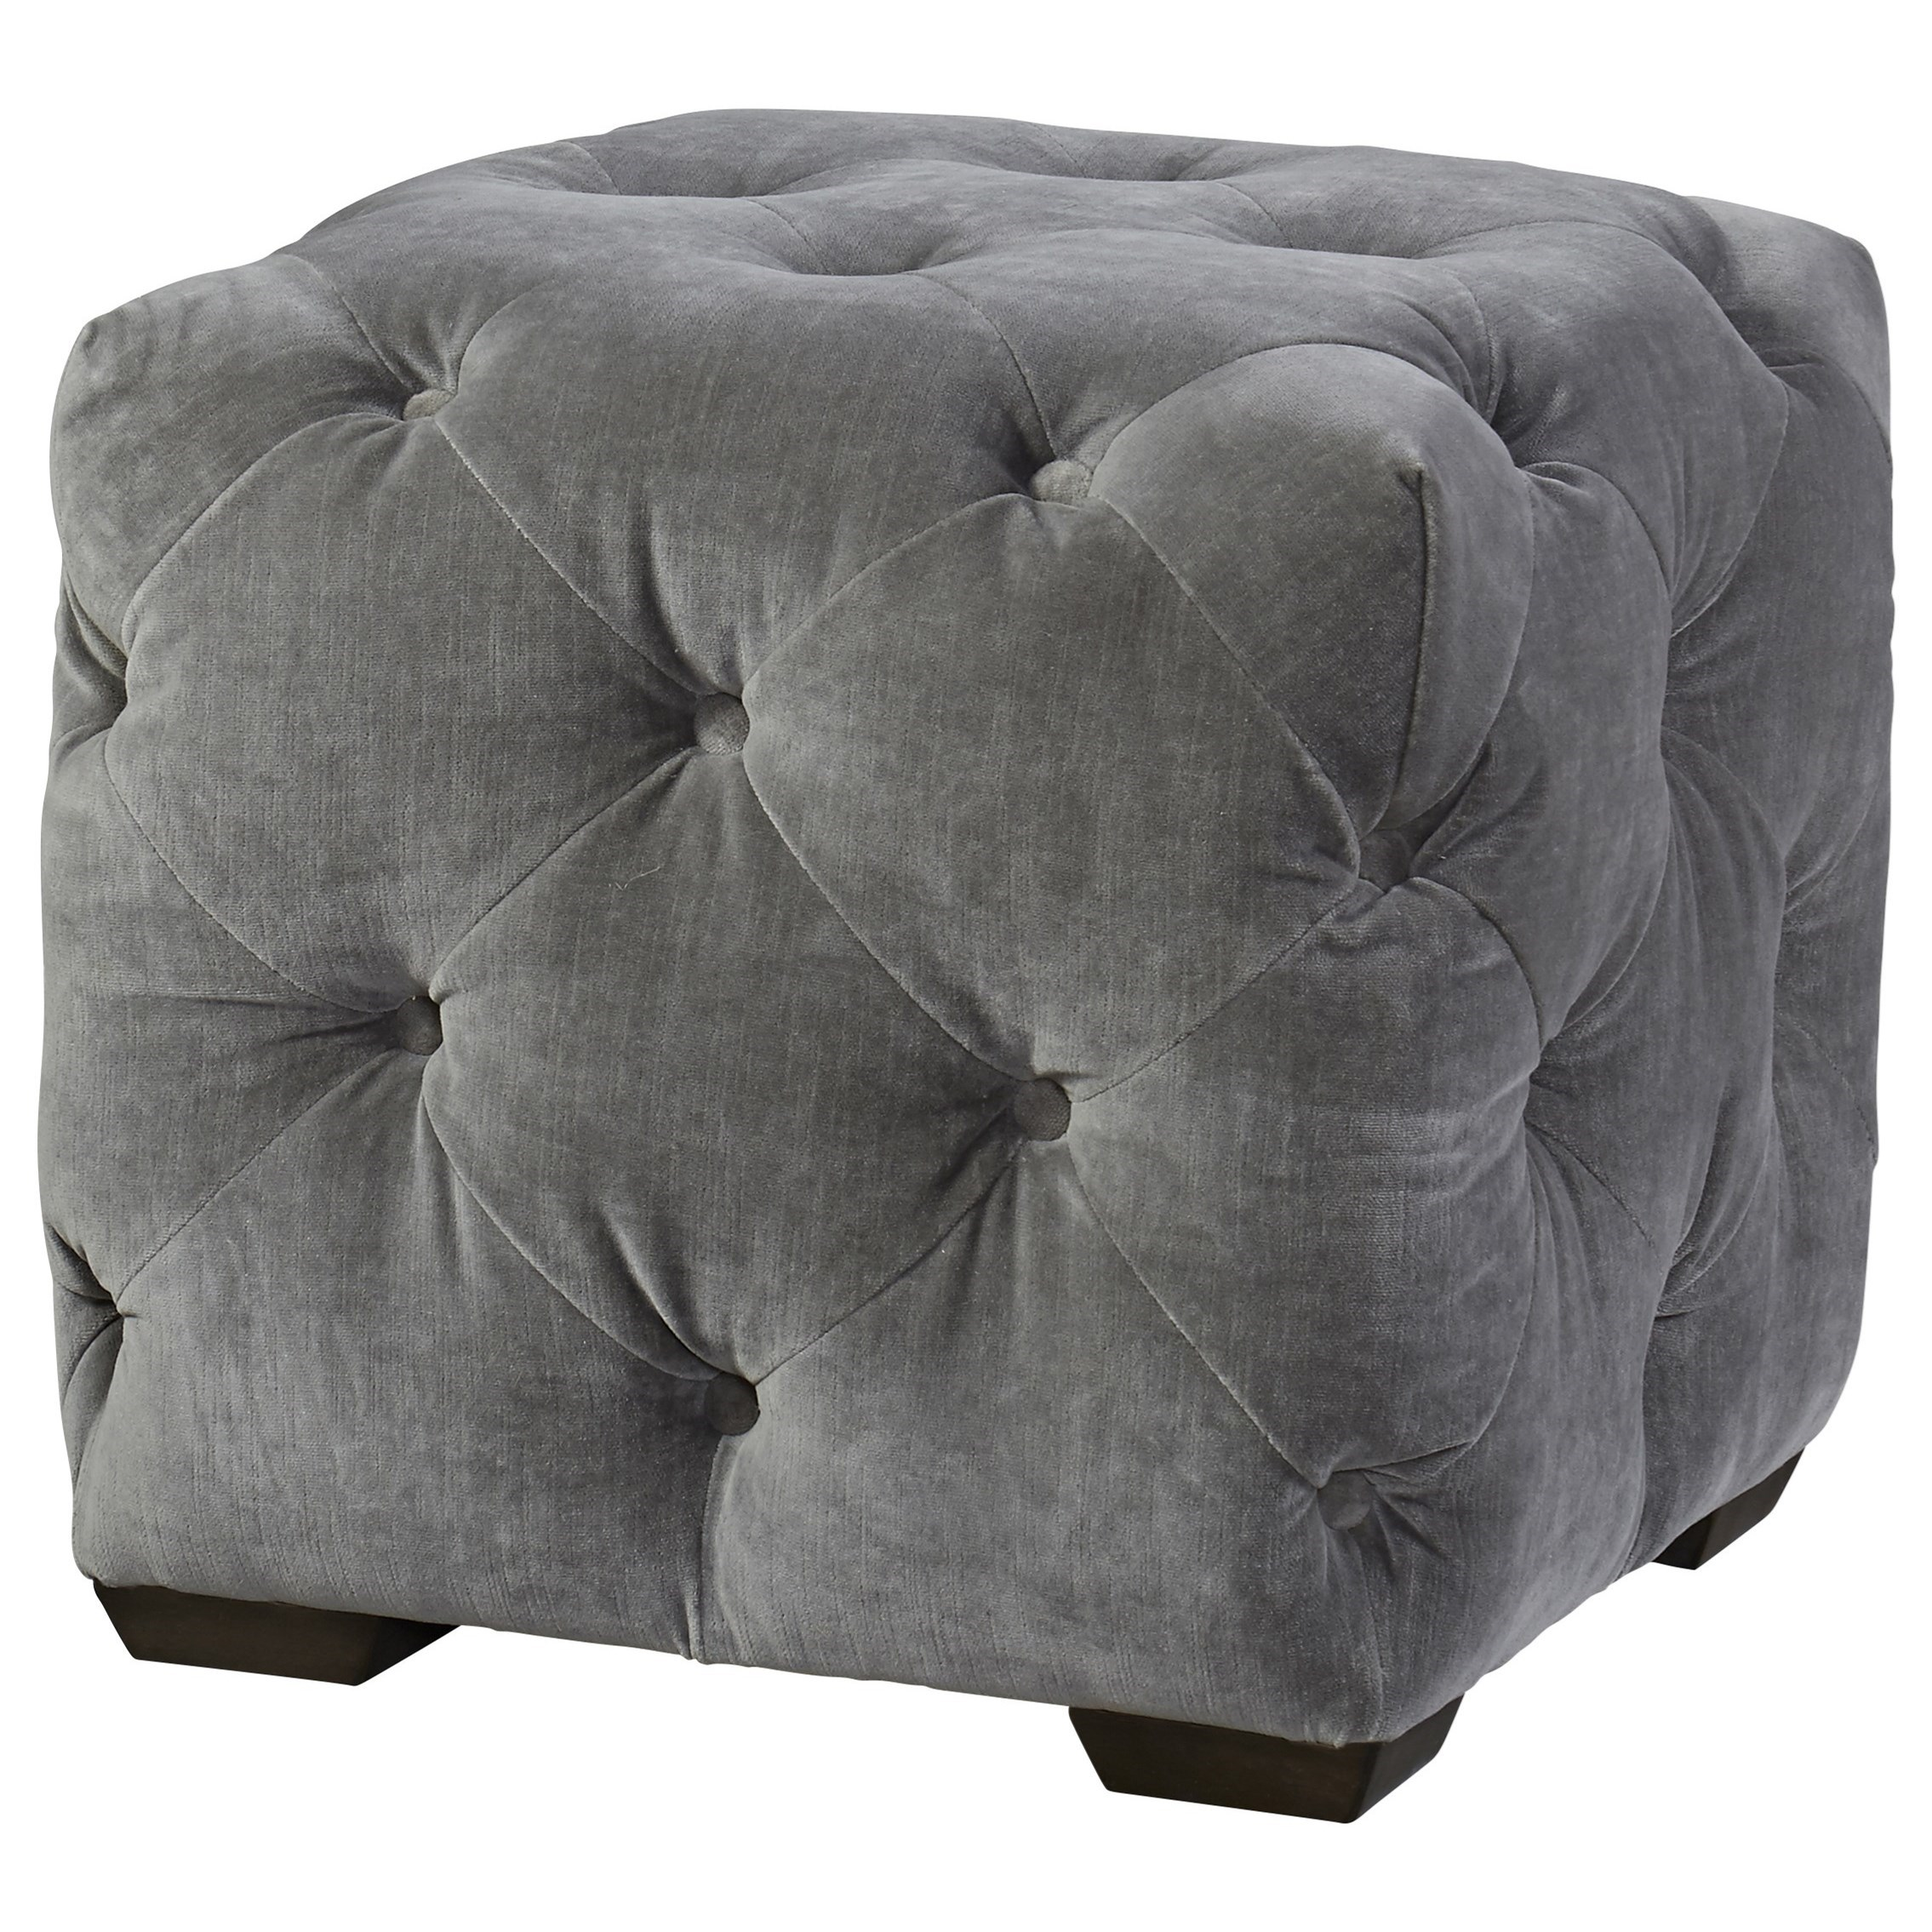 Accents Barkley Ottoman by O'Connor Designs at Sprintz Furniture